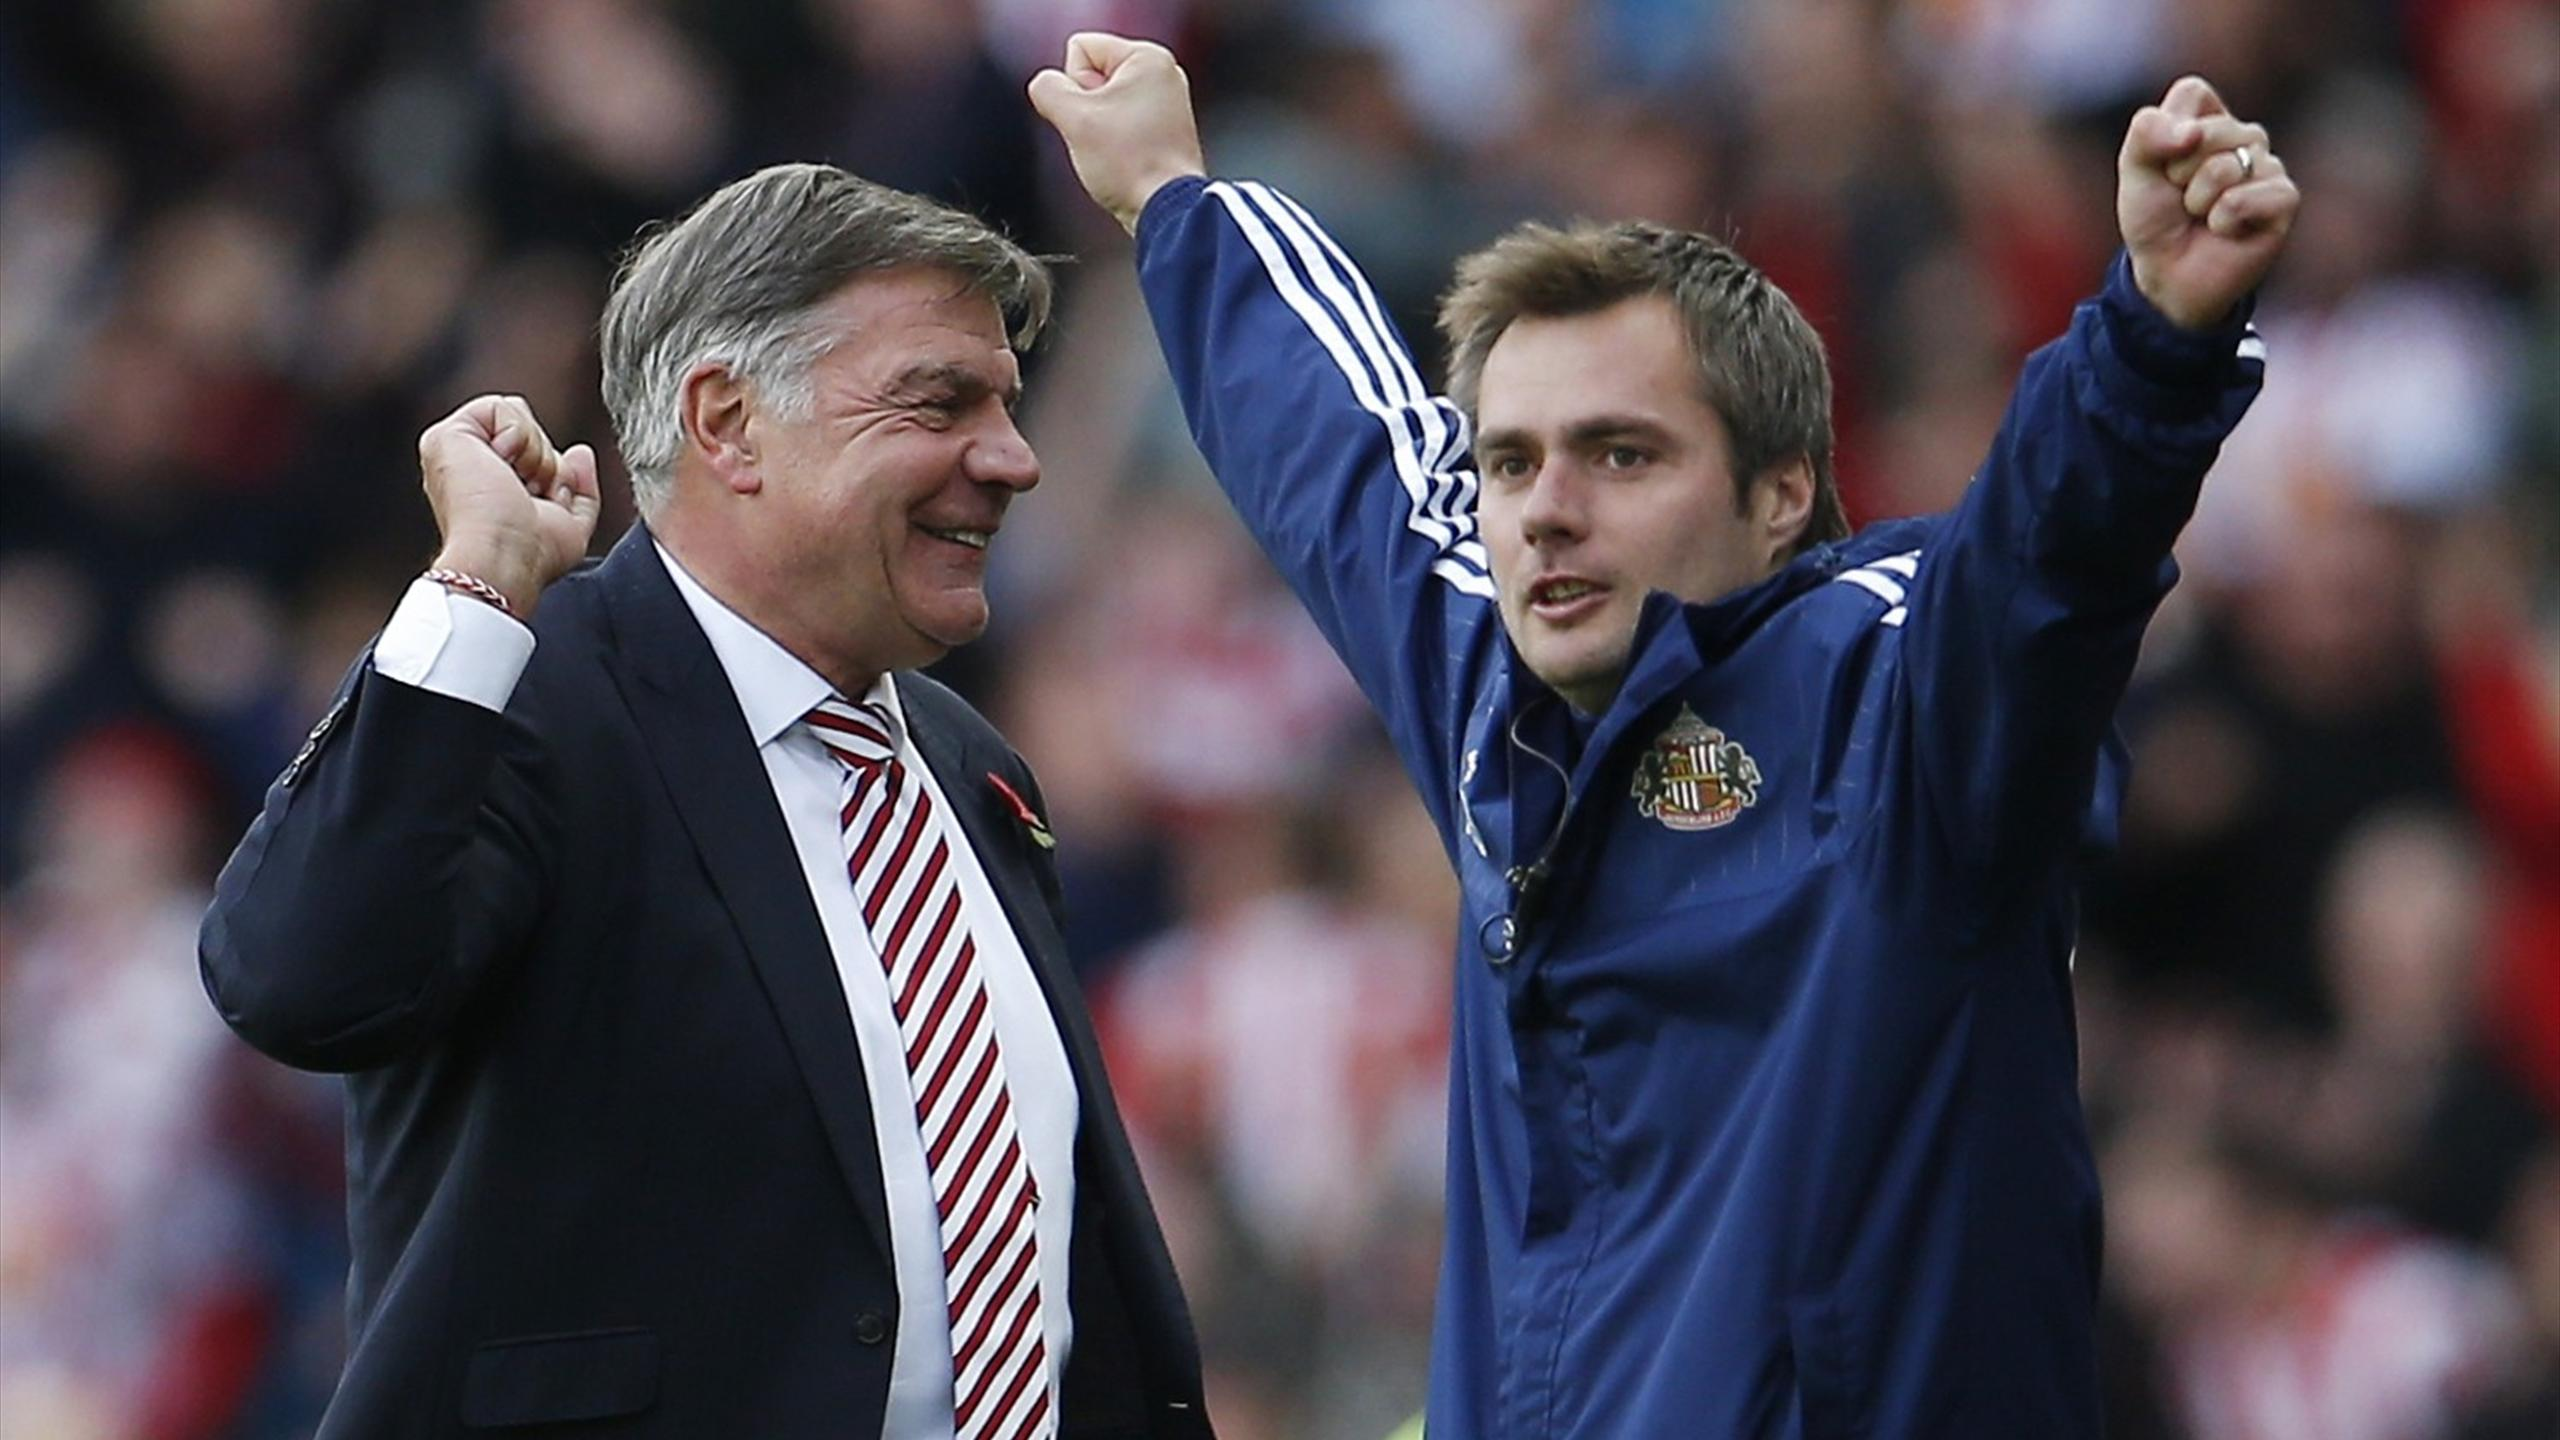 Sunderland manager Sam Allardyce and first team coach Robbie Stockdale celebrate their third goal against Newcastle